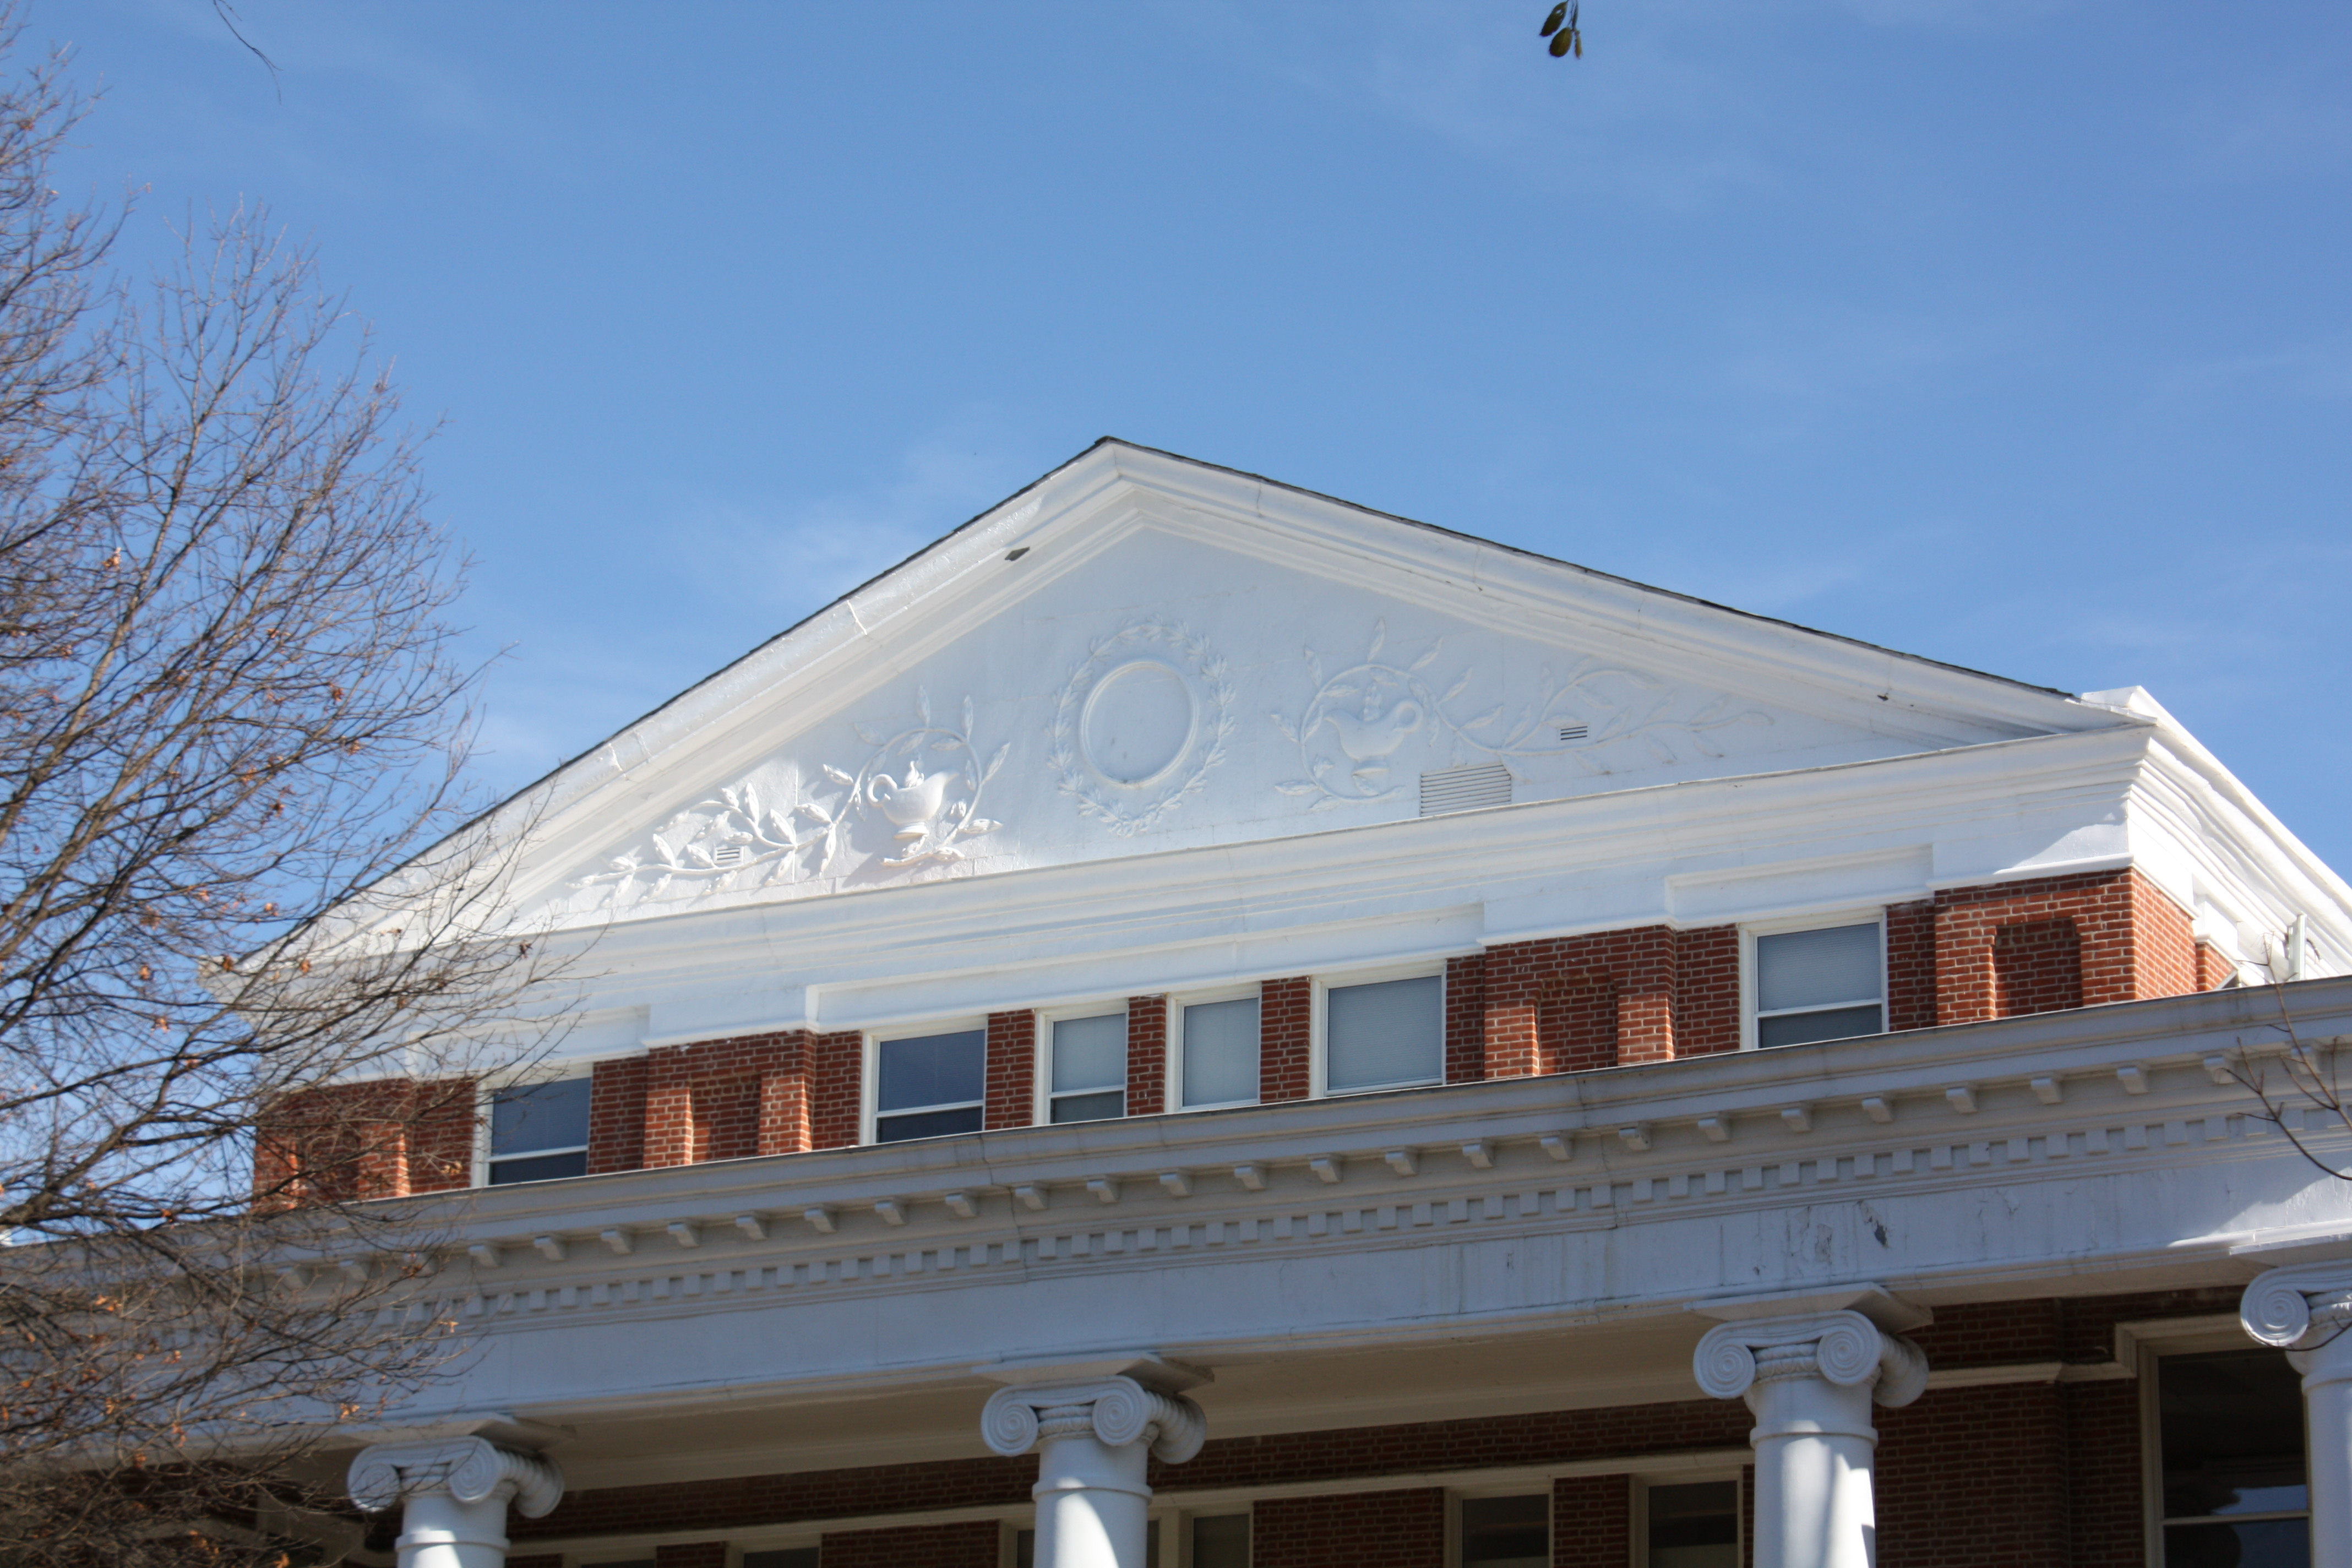 Building Language: Pediment